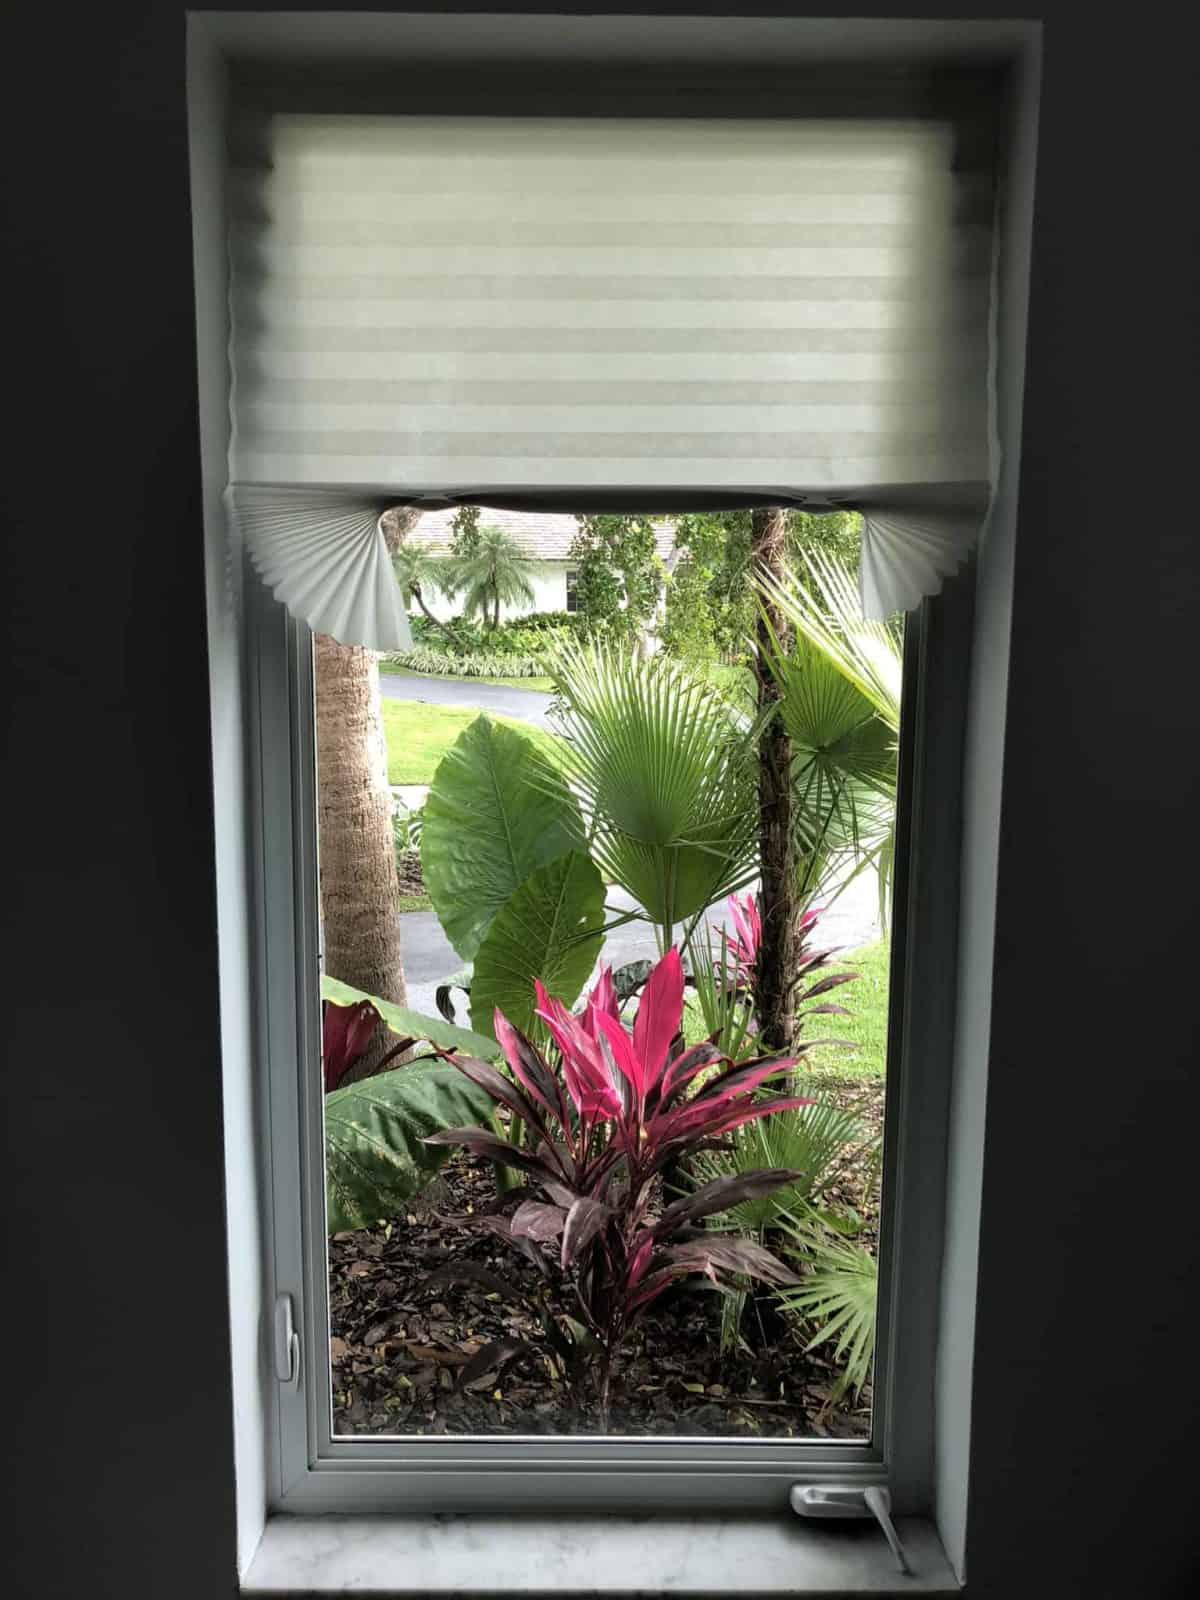 window curtain as part of home remodel to reduce room renovation costs